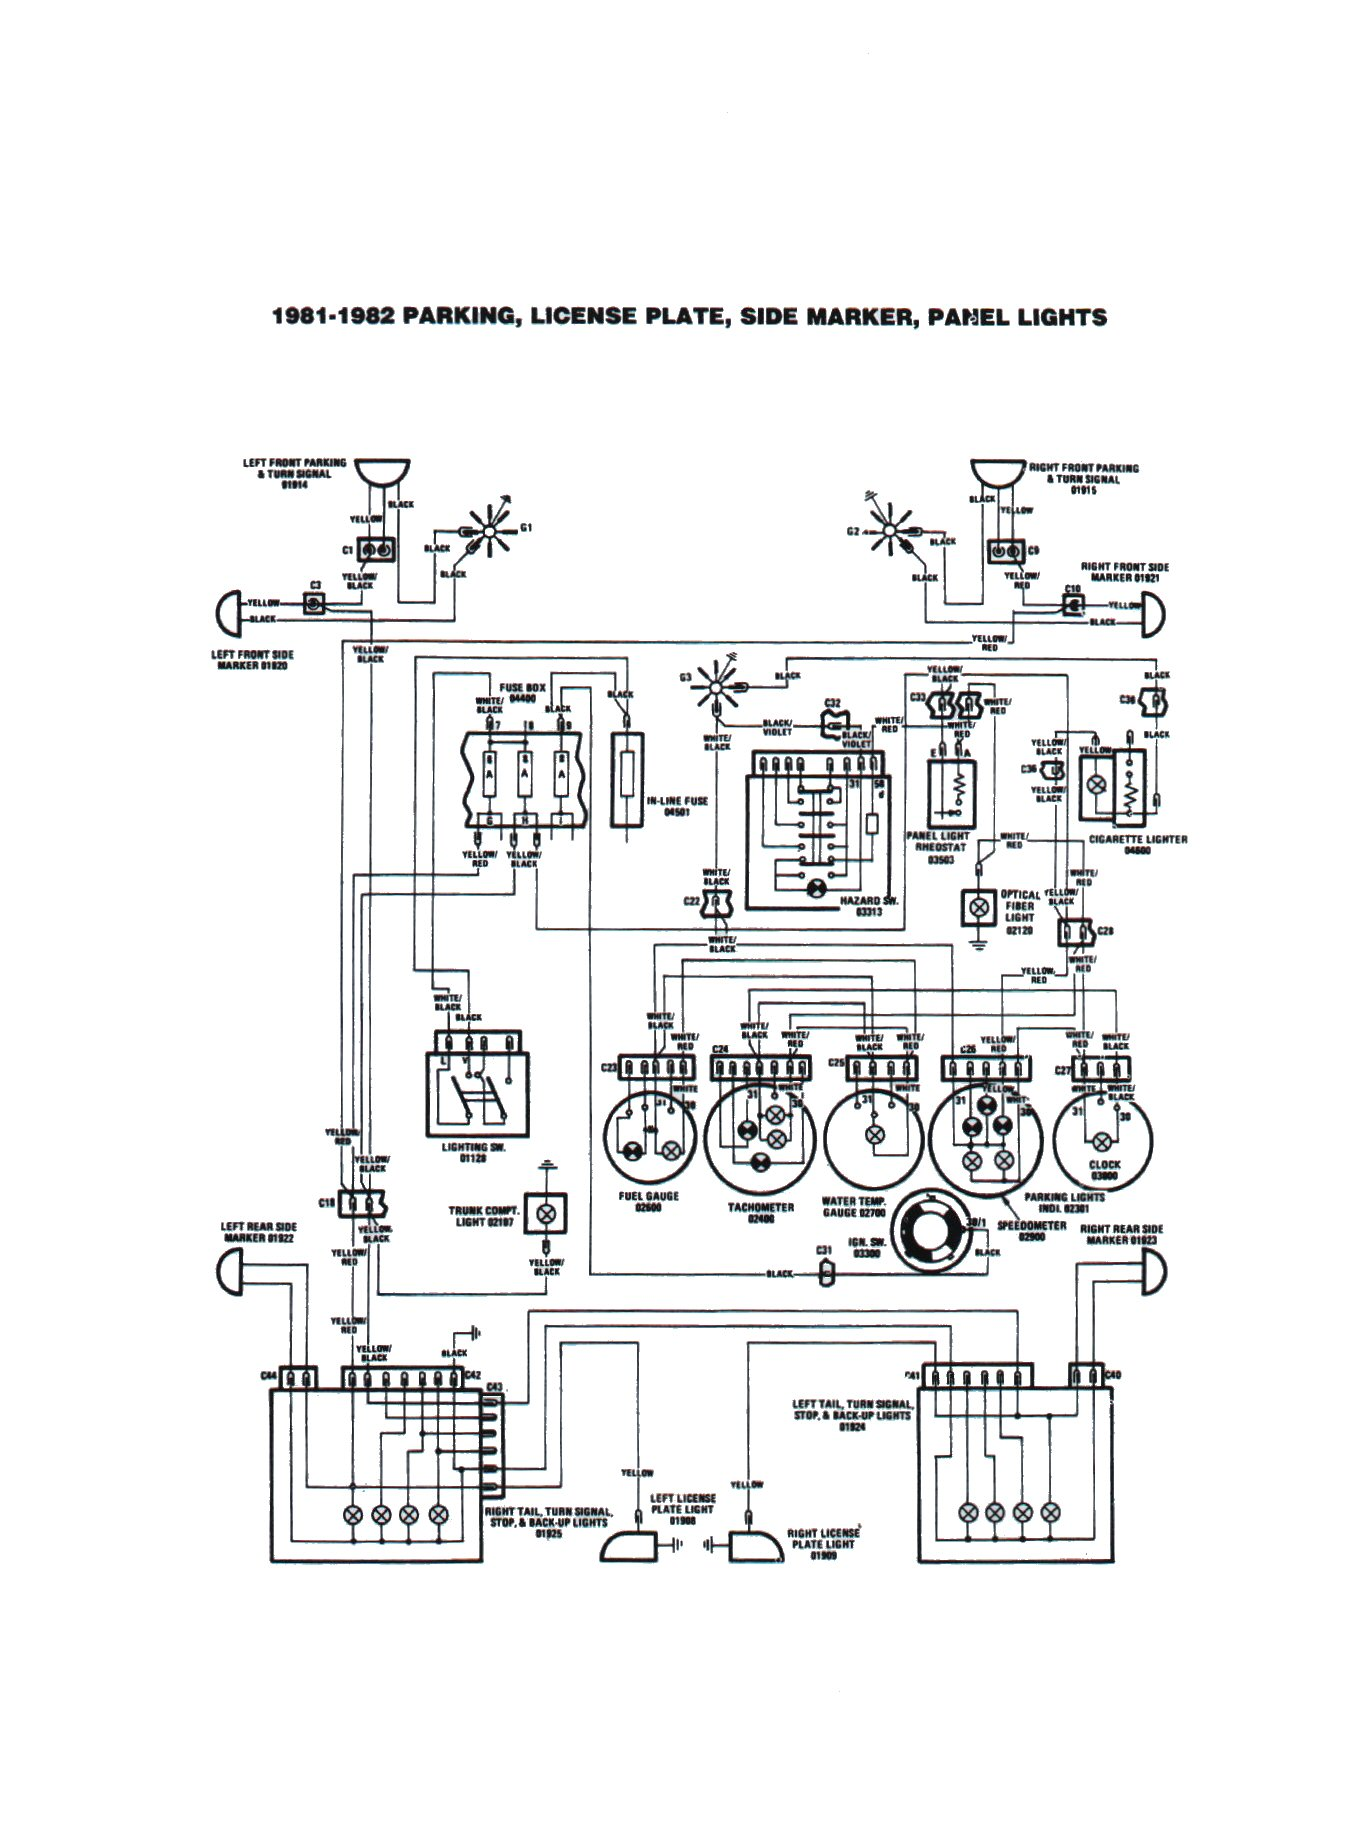 1981 Fiat Spider Wiring Diagram : 31 Wiring Diagram Images